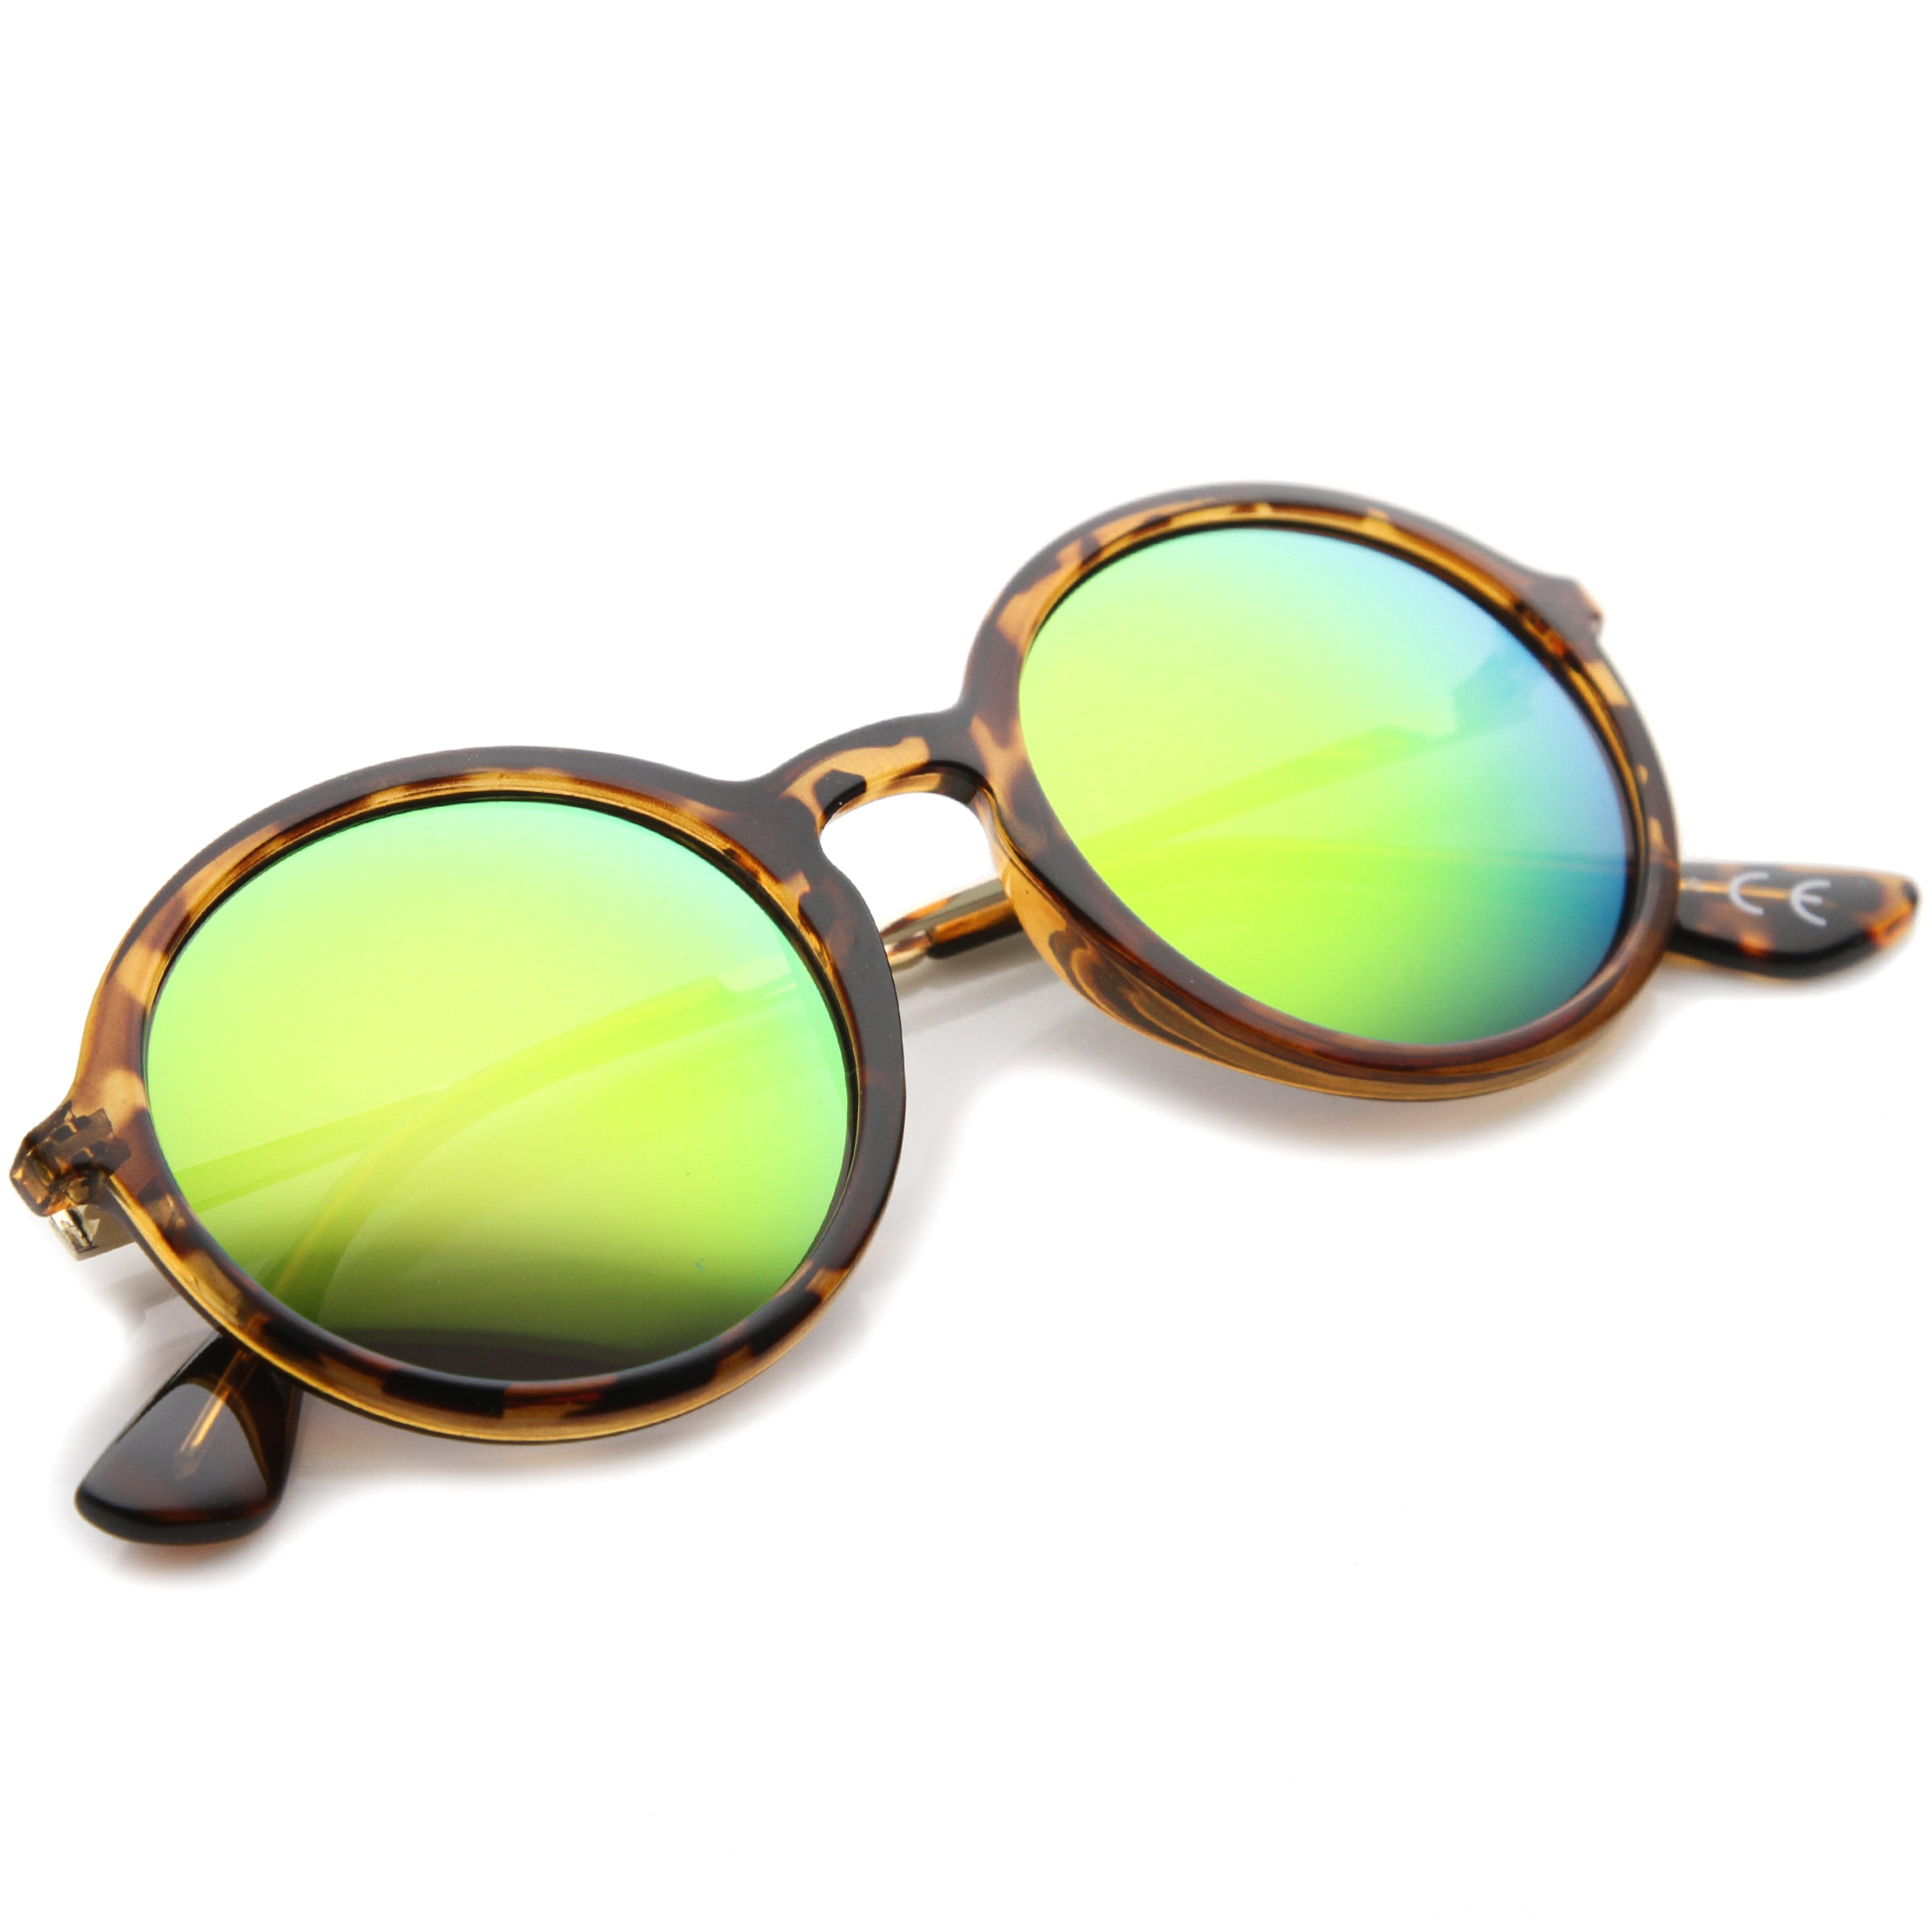 Mid Sized Modern Metal Temple Mirror Lens Round Sunglasses 49mm - sunglass.la - 20